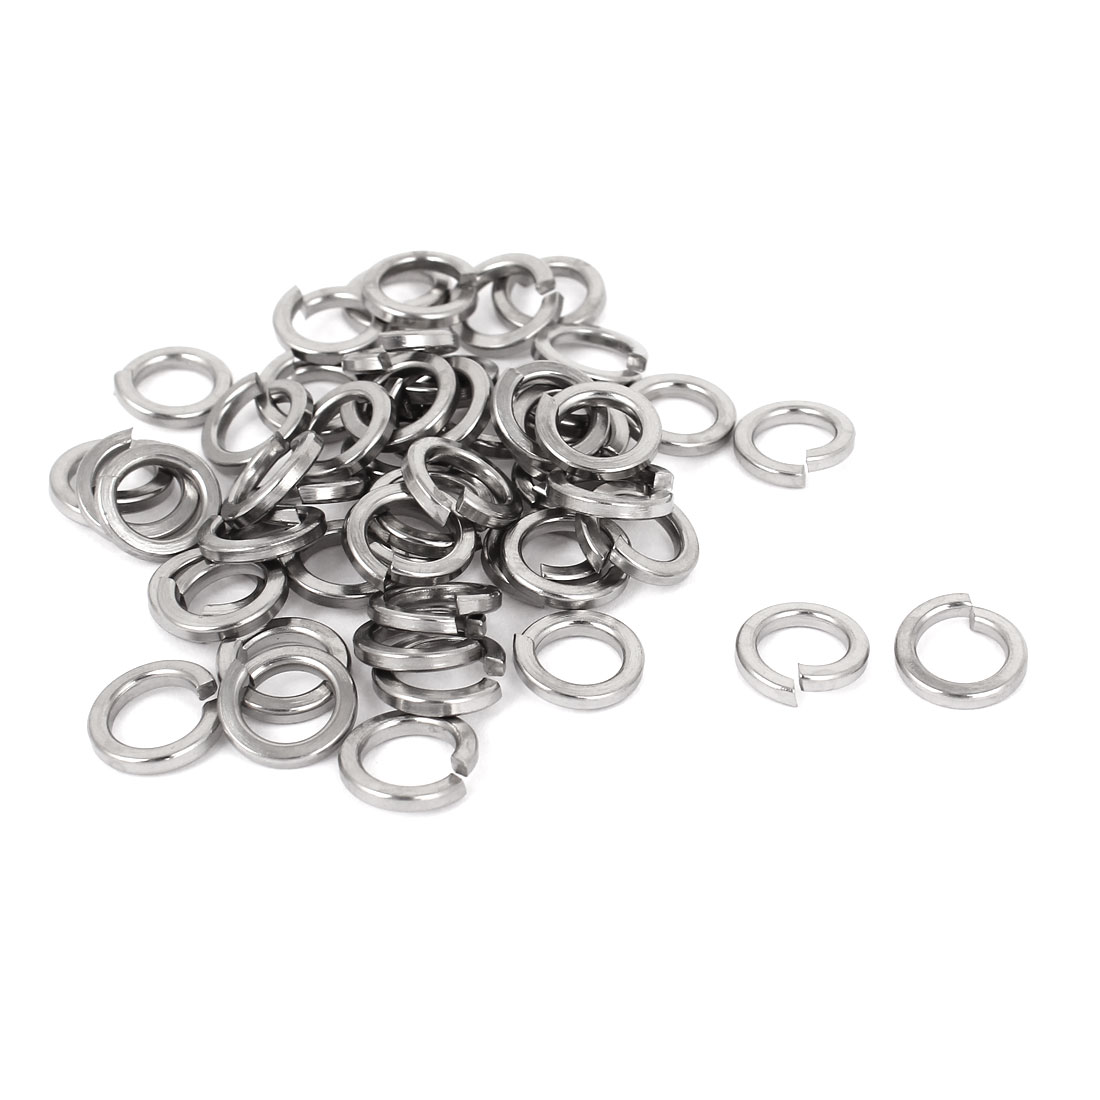 "50pcs 304 Stainless Steel Split Lock Spring Washers 5/16"" Screw Spacer Pad"